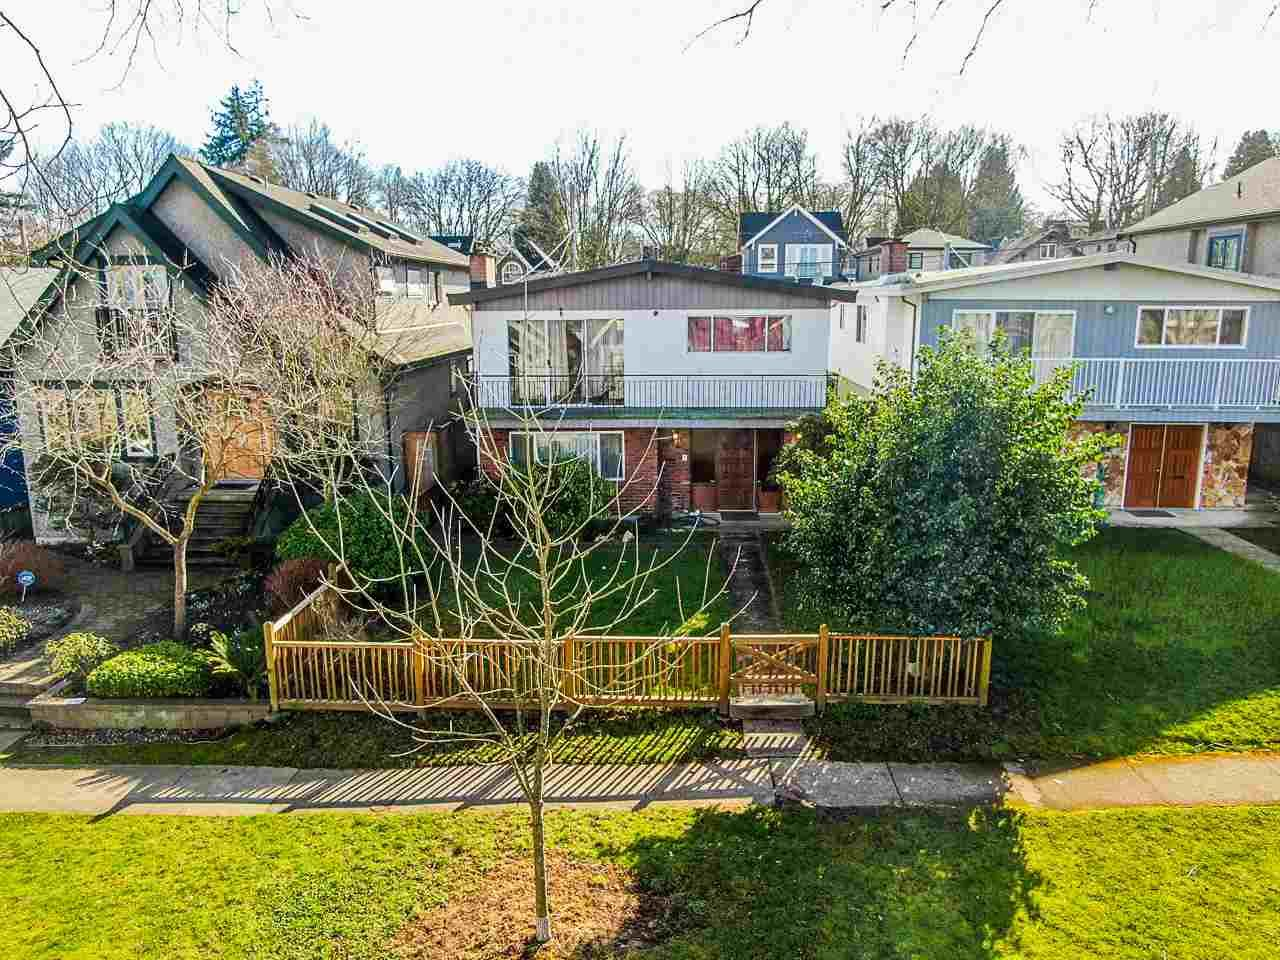 Main Photo: R2445303 - 3436 W 19TH AVE, VANCOUVER HOUSE